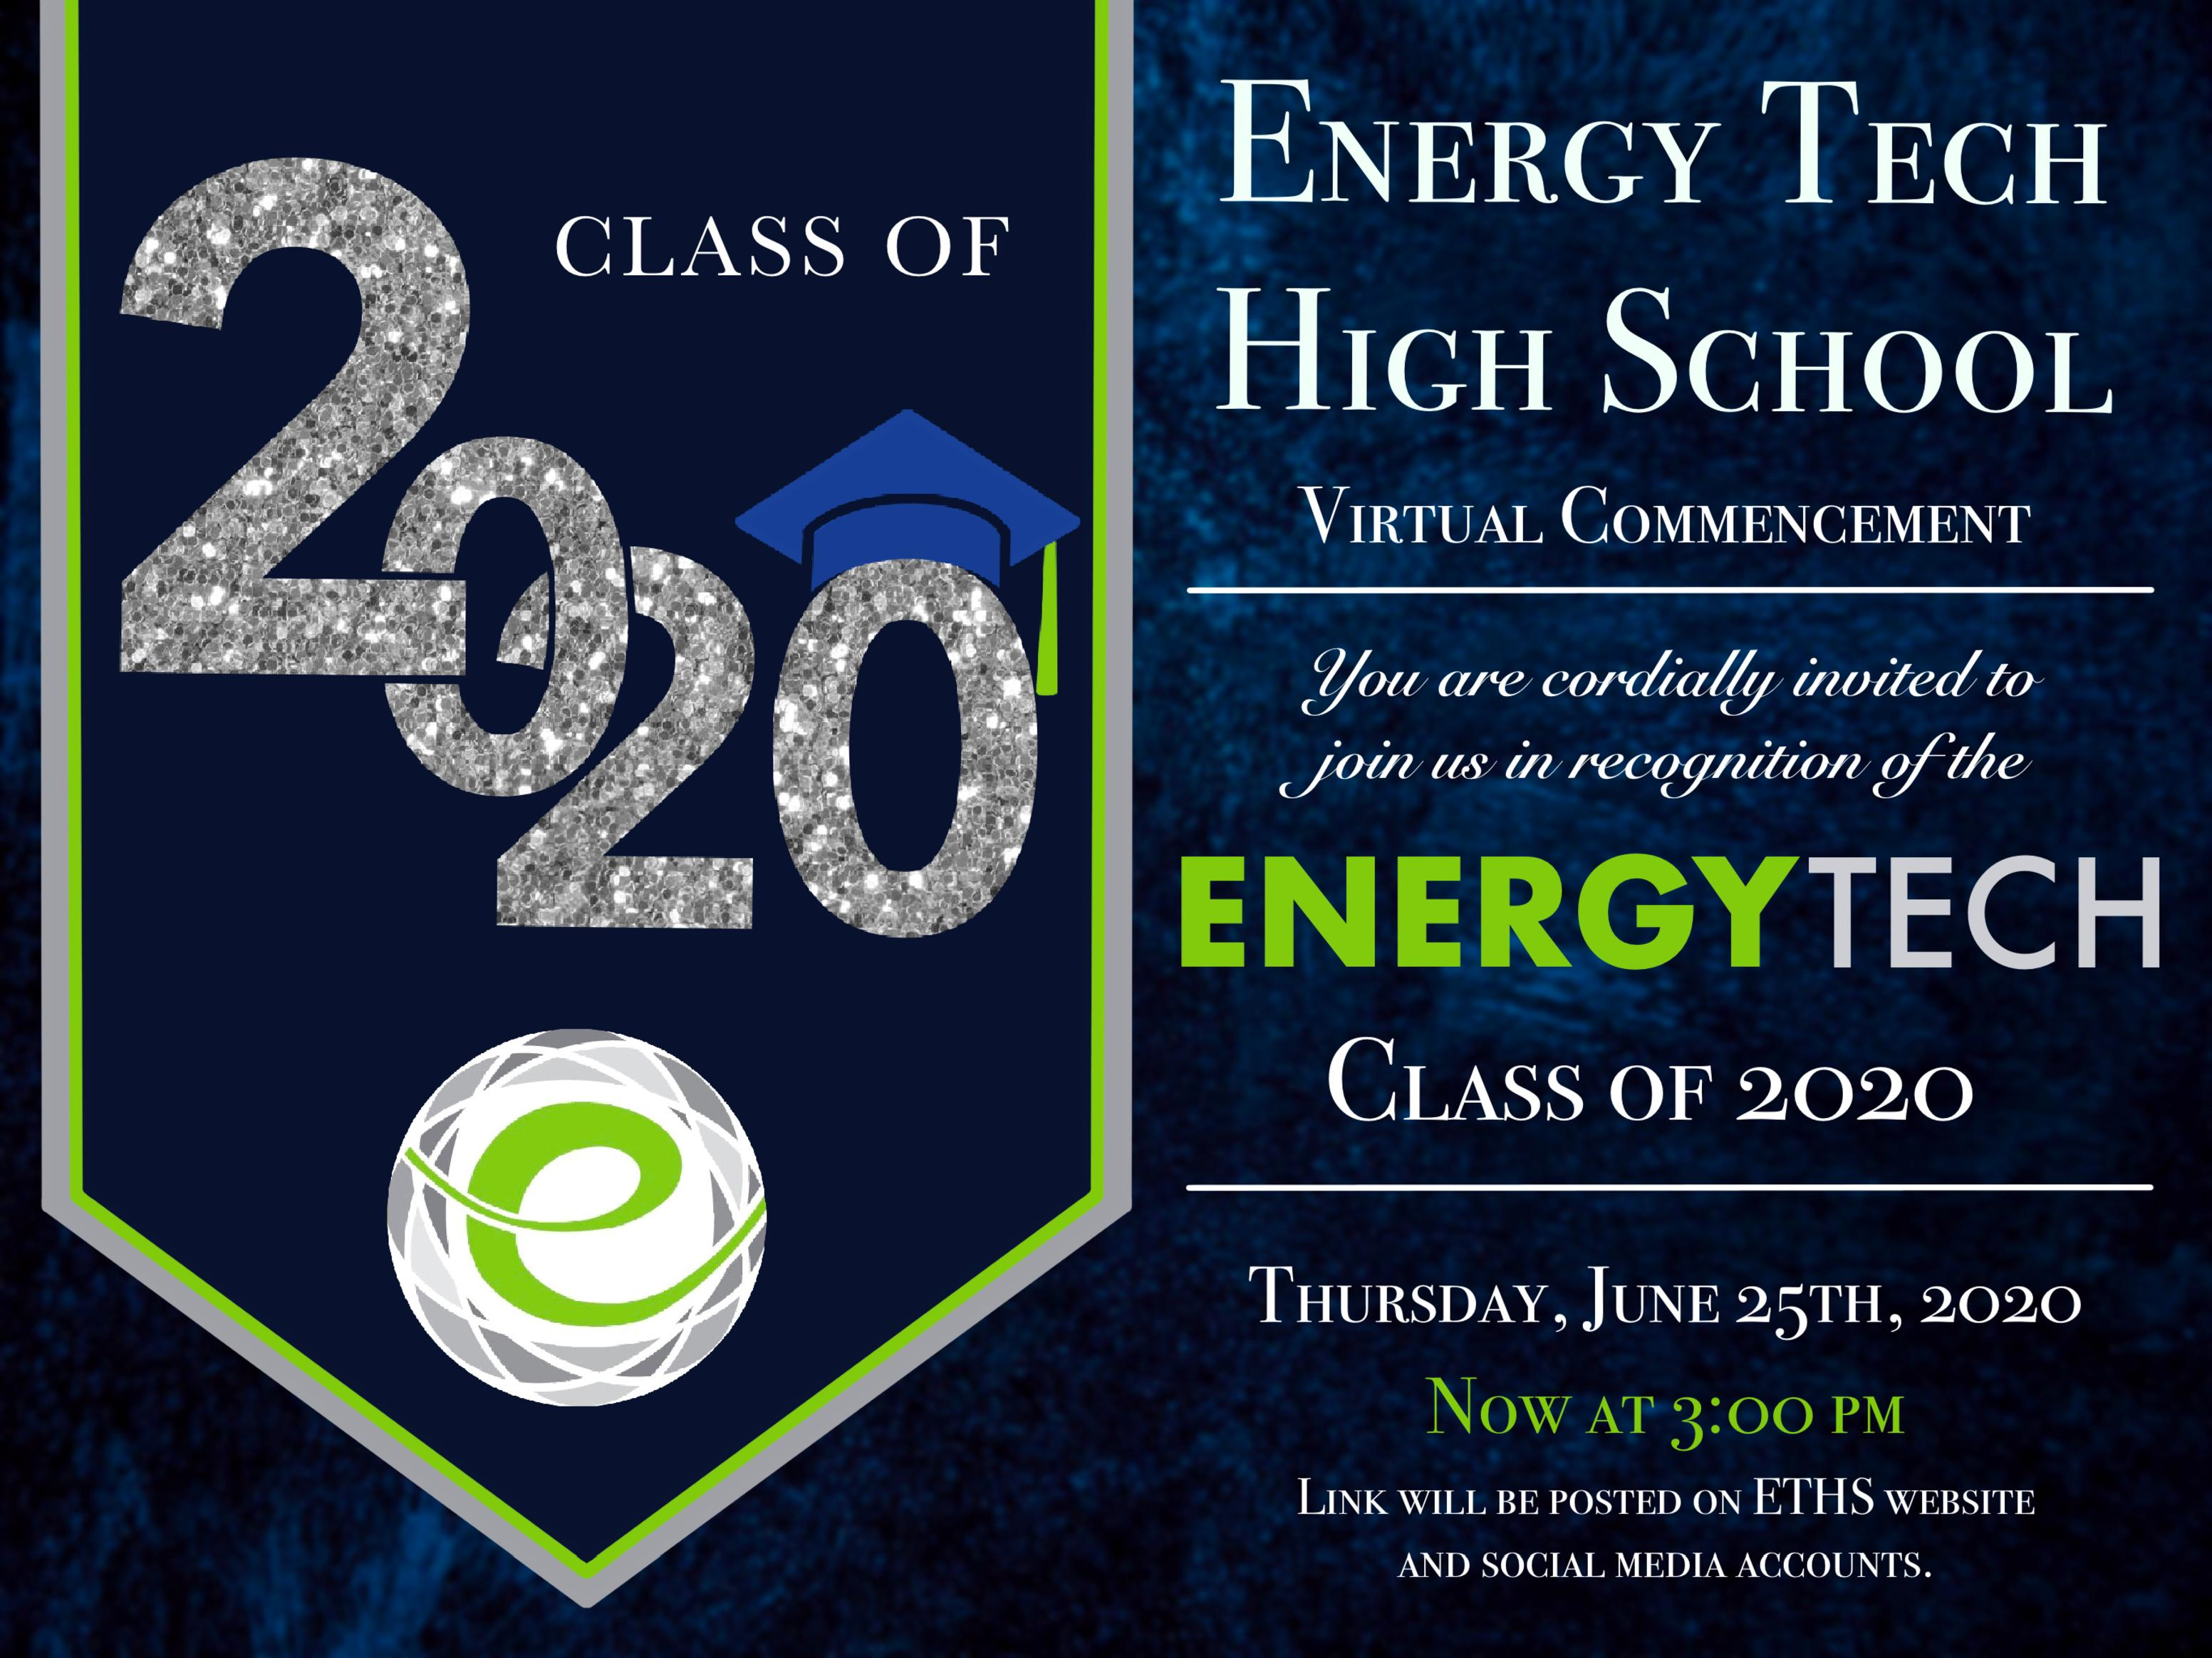 Class of 2020 Graduation is on June 25th, 2020